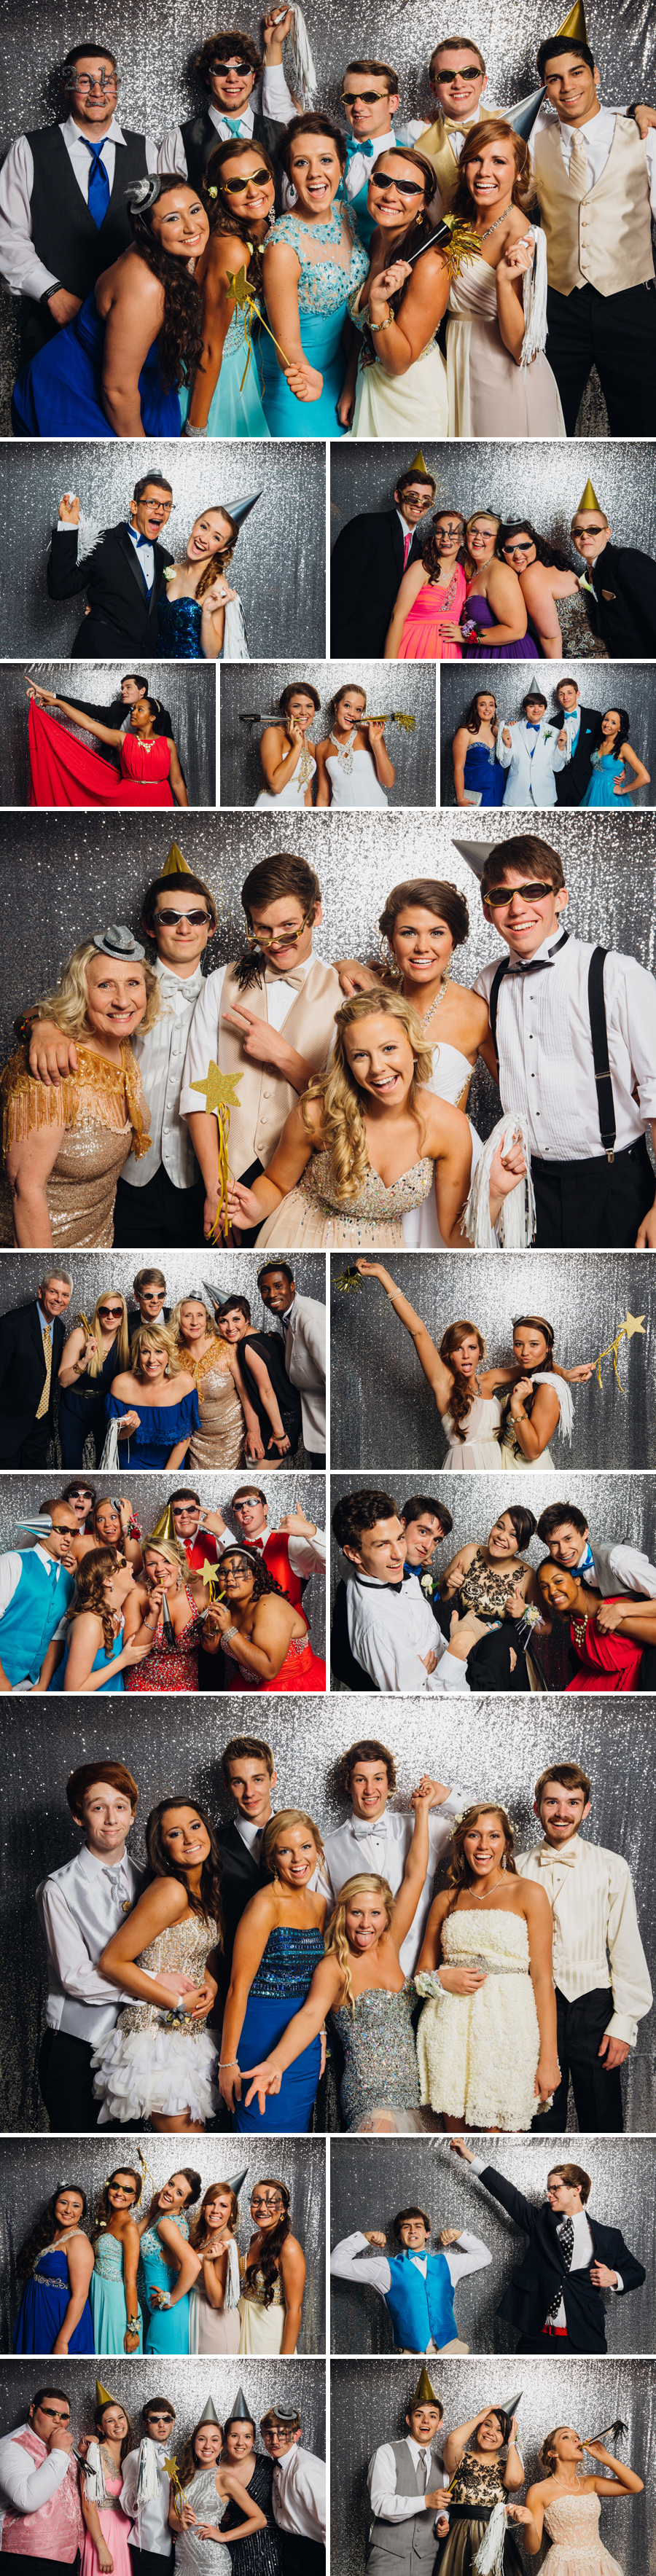 cookeville high school prom photos